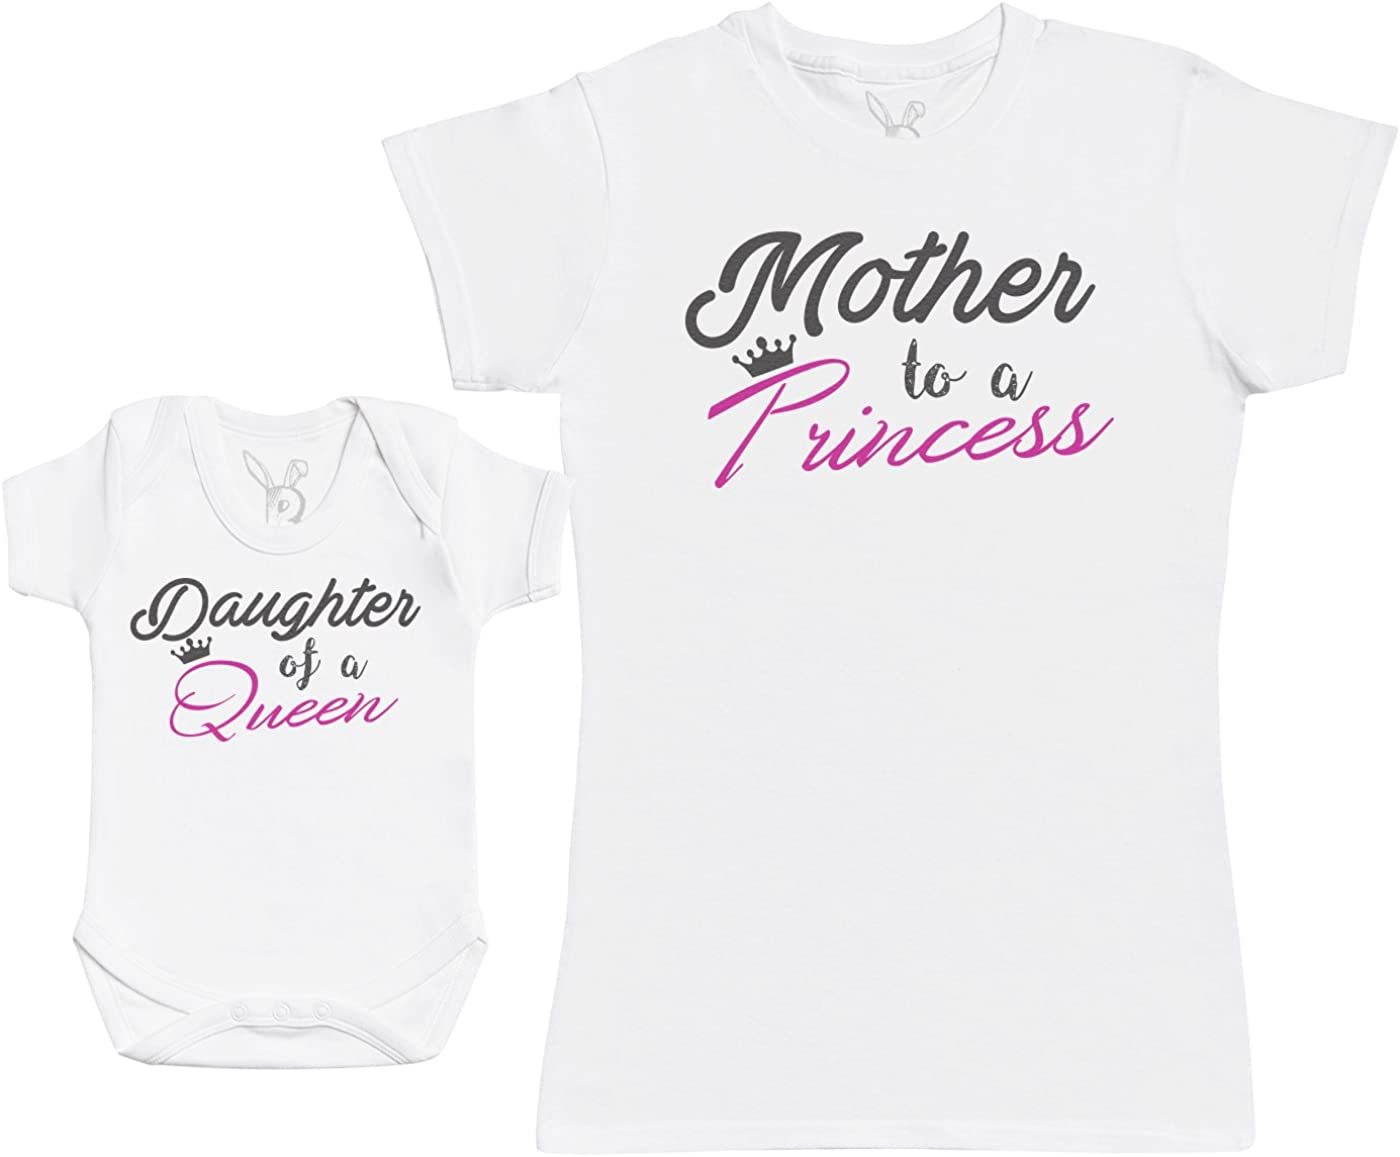 Daughter of A Queen & Mother To A Princess - Regalo para Madres y bebés en un Body para bebés y una Camiseta de Mujer a Juego - Blanco - L & 3-6 Meses